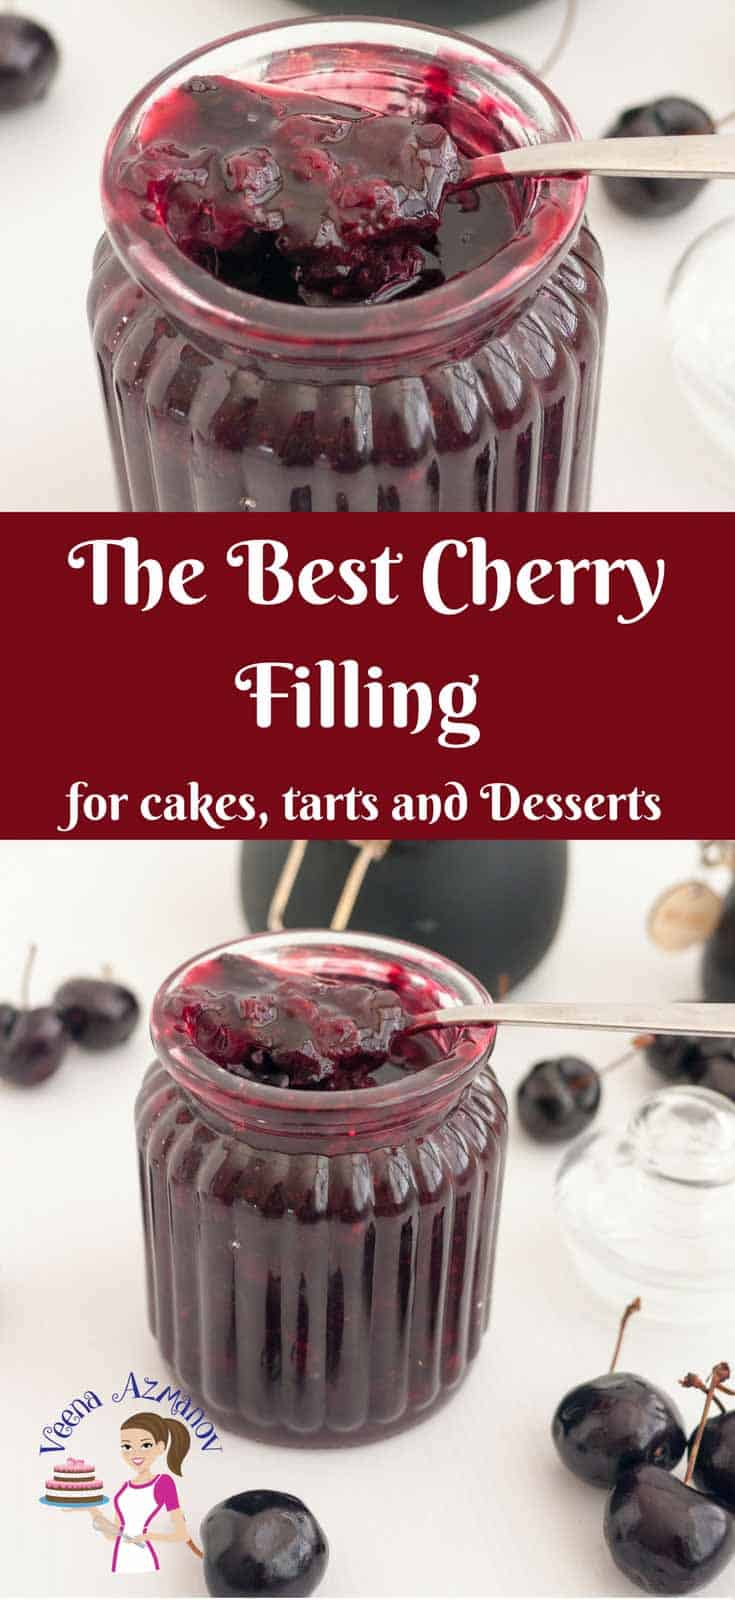 A Cherry Filling is a simple, easy and effortless recipe that gets done in minutes and is an absolute treat you can use in so many different ways. Try a spoonful over your breakfast yogurt, stack of pancakes or waffles. Layer it between cake layers as a cherry cake filling, spread it in a prebaked crust as a cherry pie filling or spoon over your favorite desserts and ice creams and cherry dessert topping.